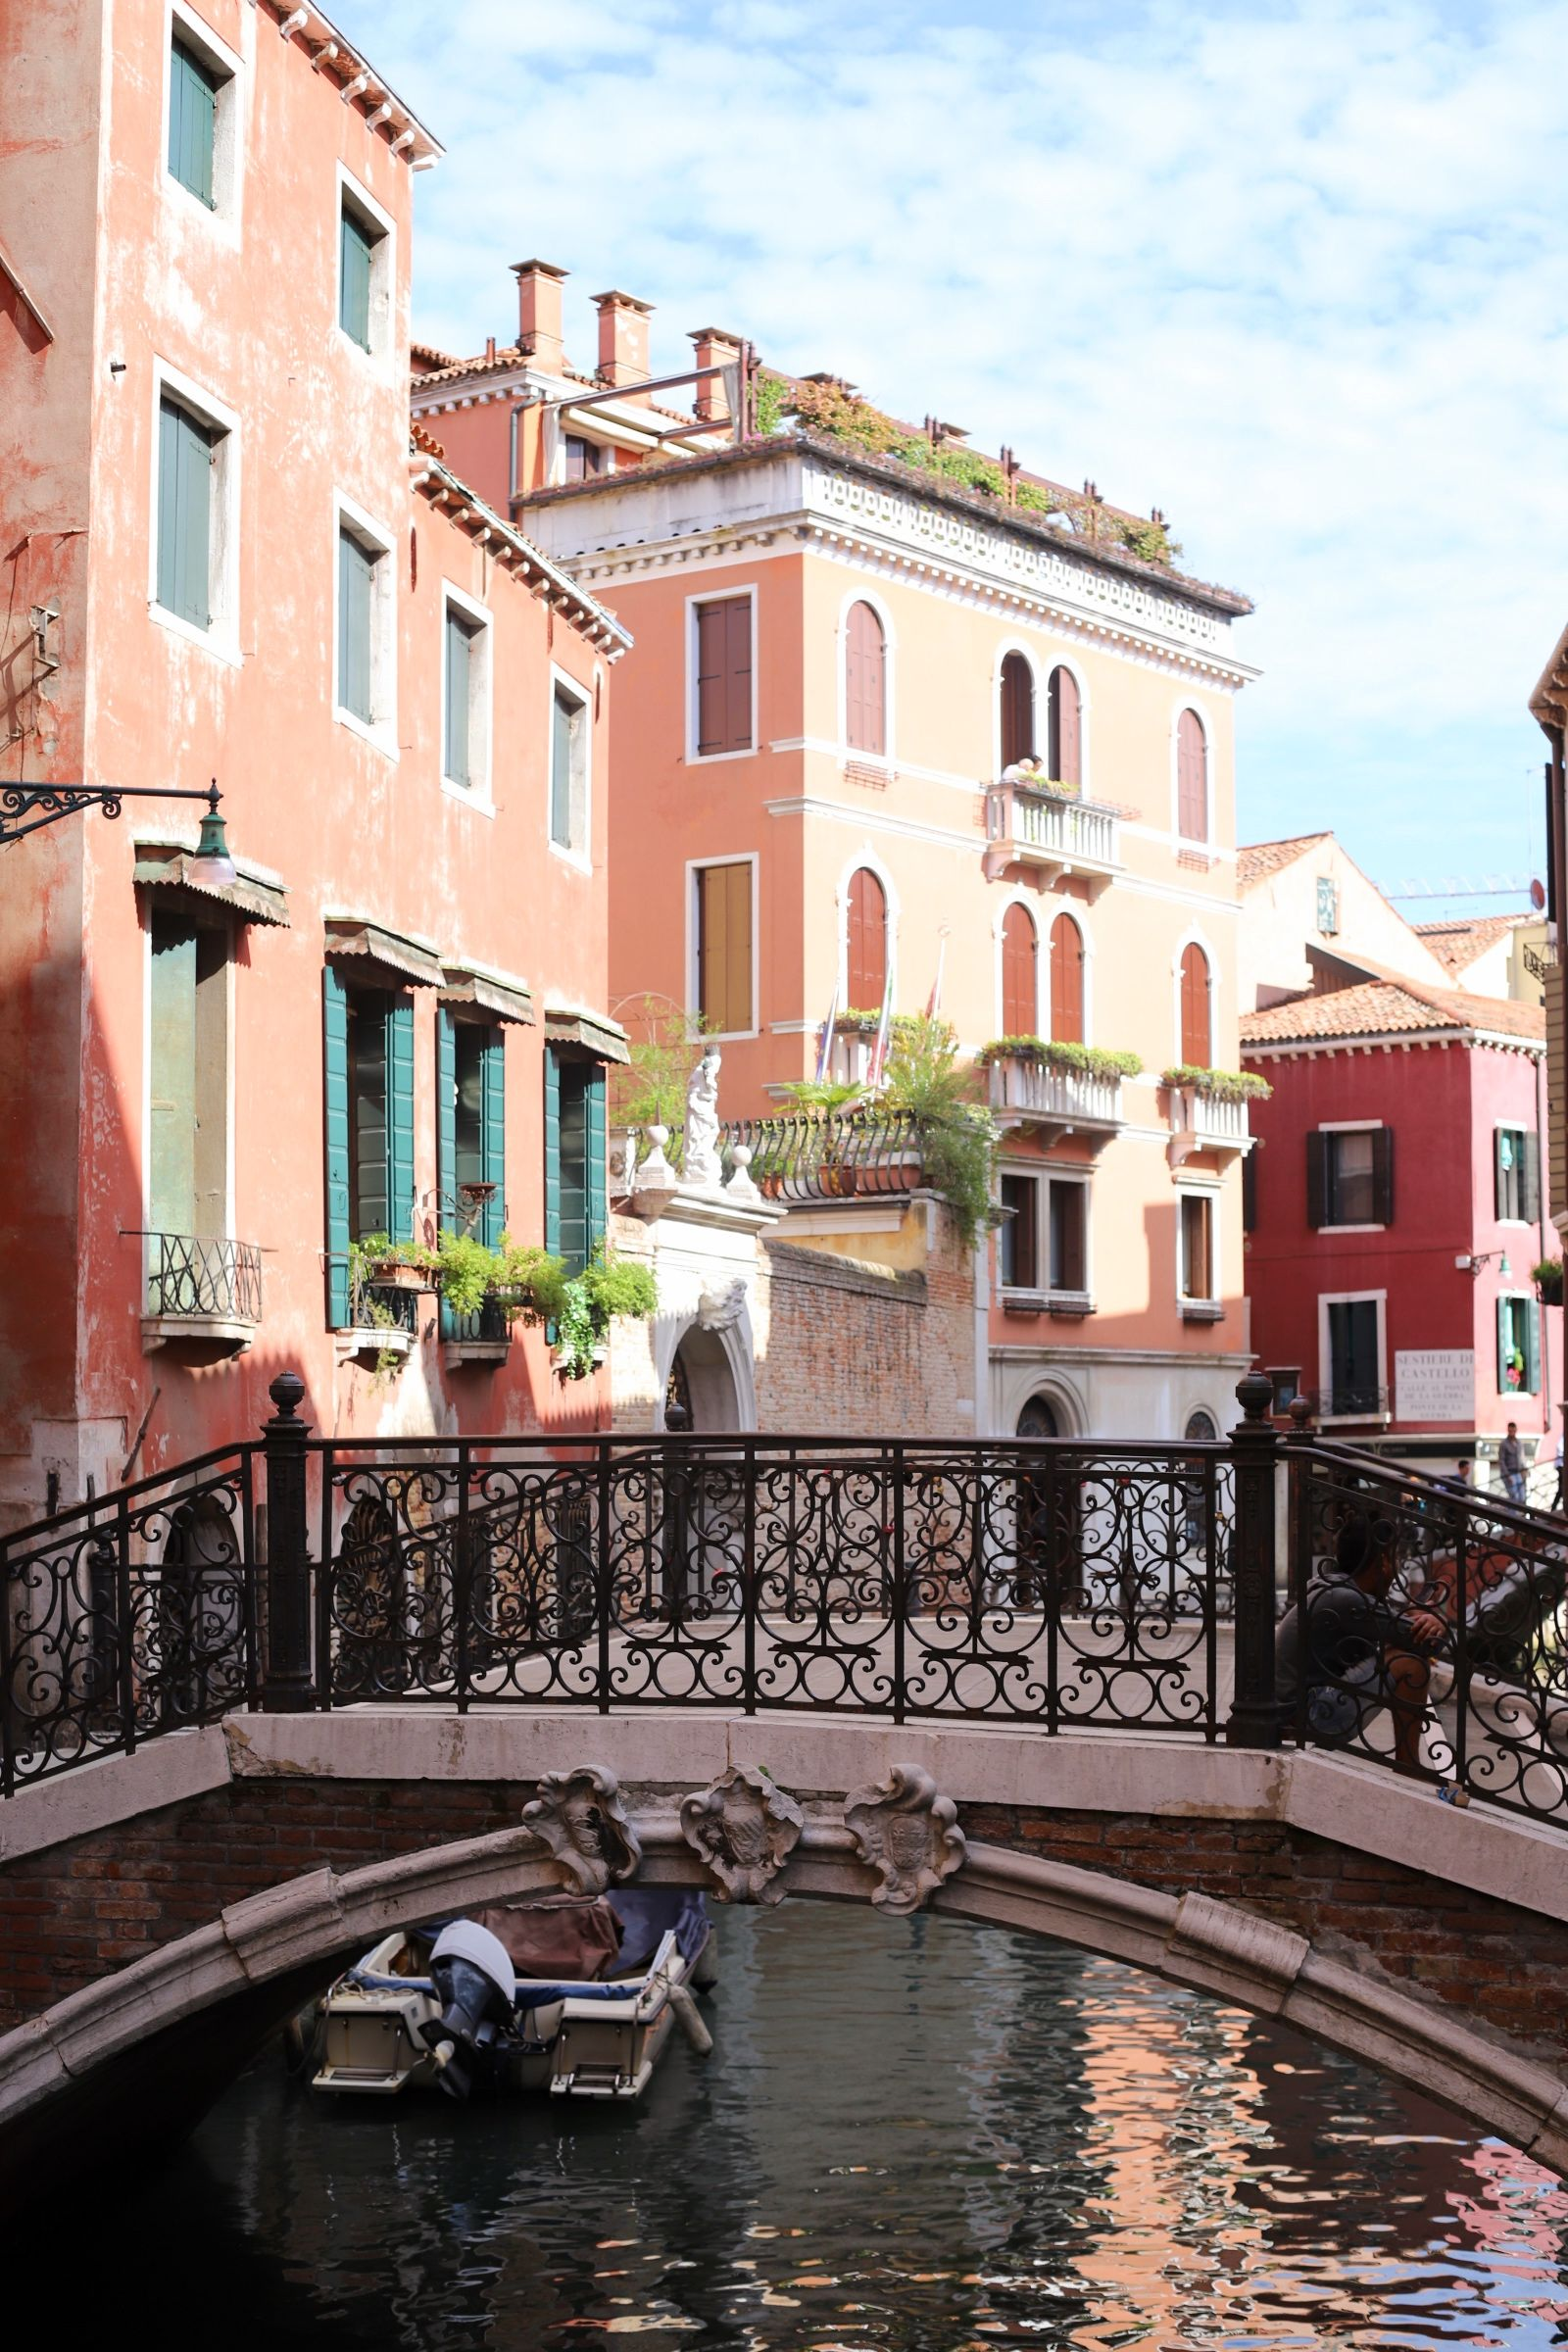 Rooftop Terraces & Gondolas in Venice | Venice tours ...